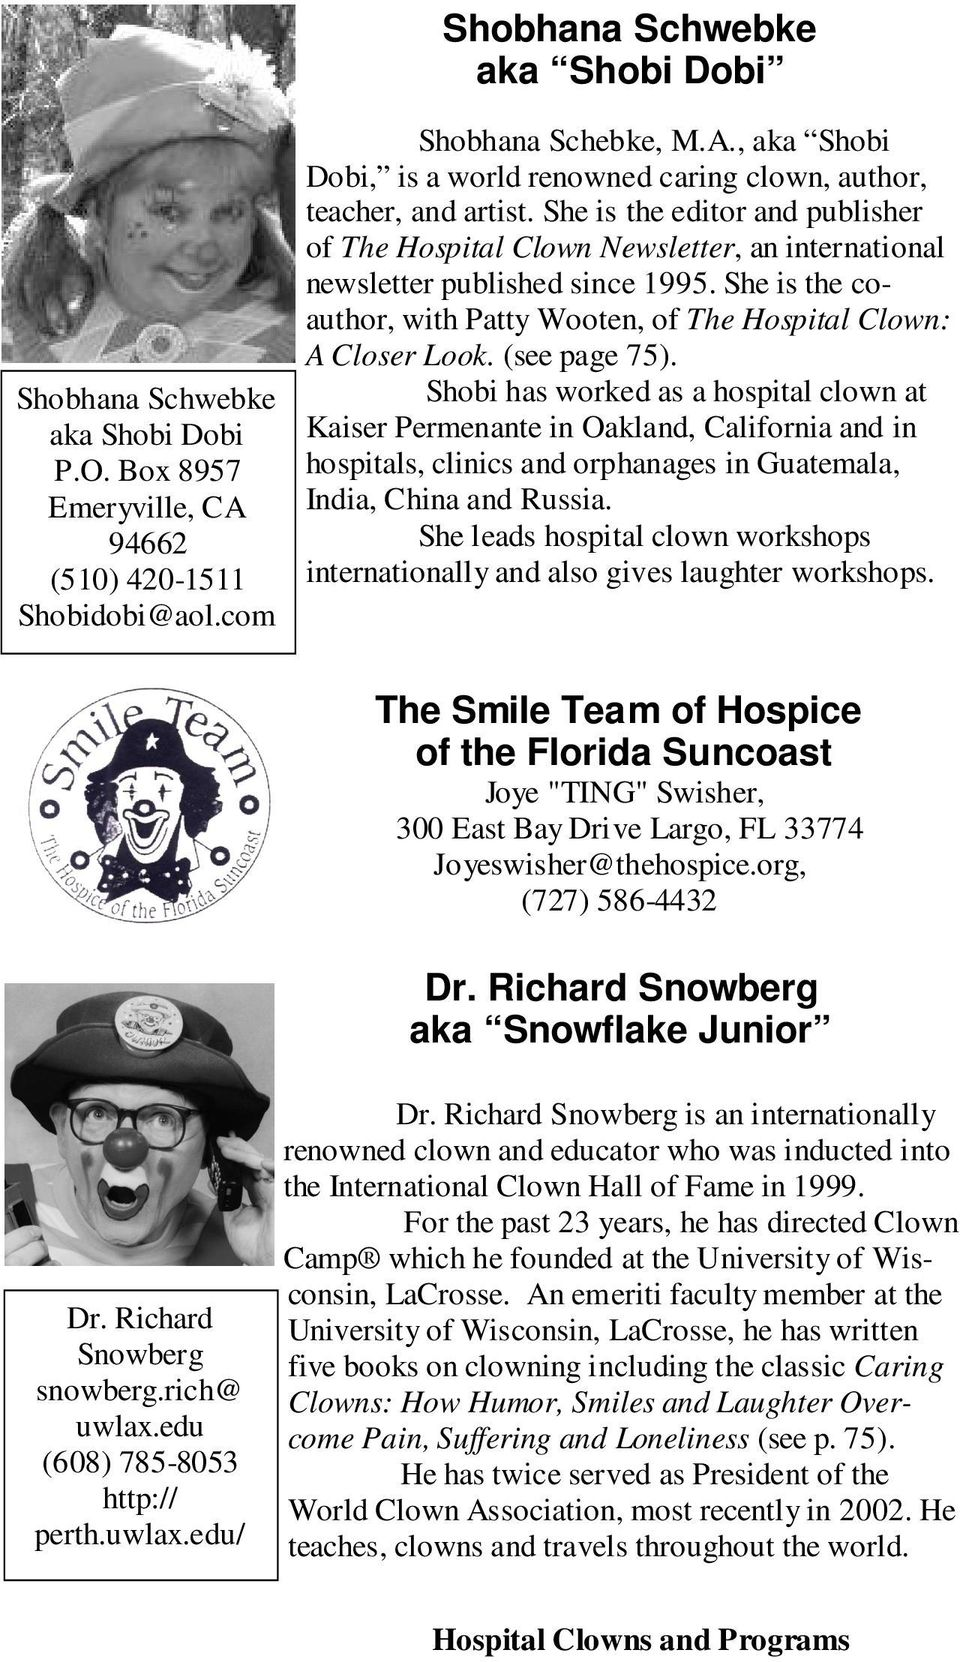 (see page 75). Shobi has worked as a hospital clown at Kaiser Permenante in Oakland, California and in hospitals, clinics and orphanages in Guatemala, India, China and Russia.